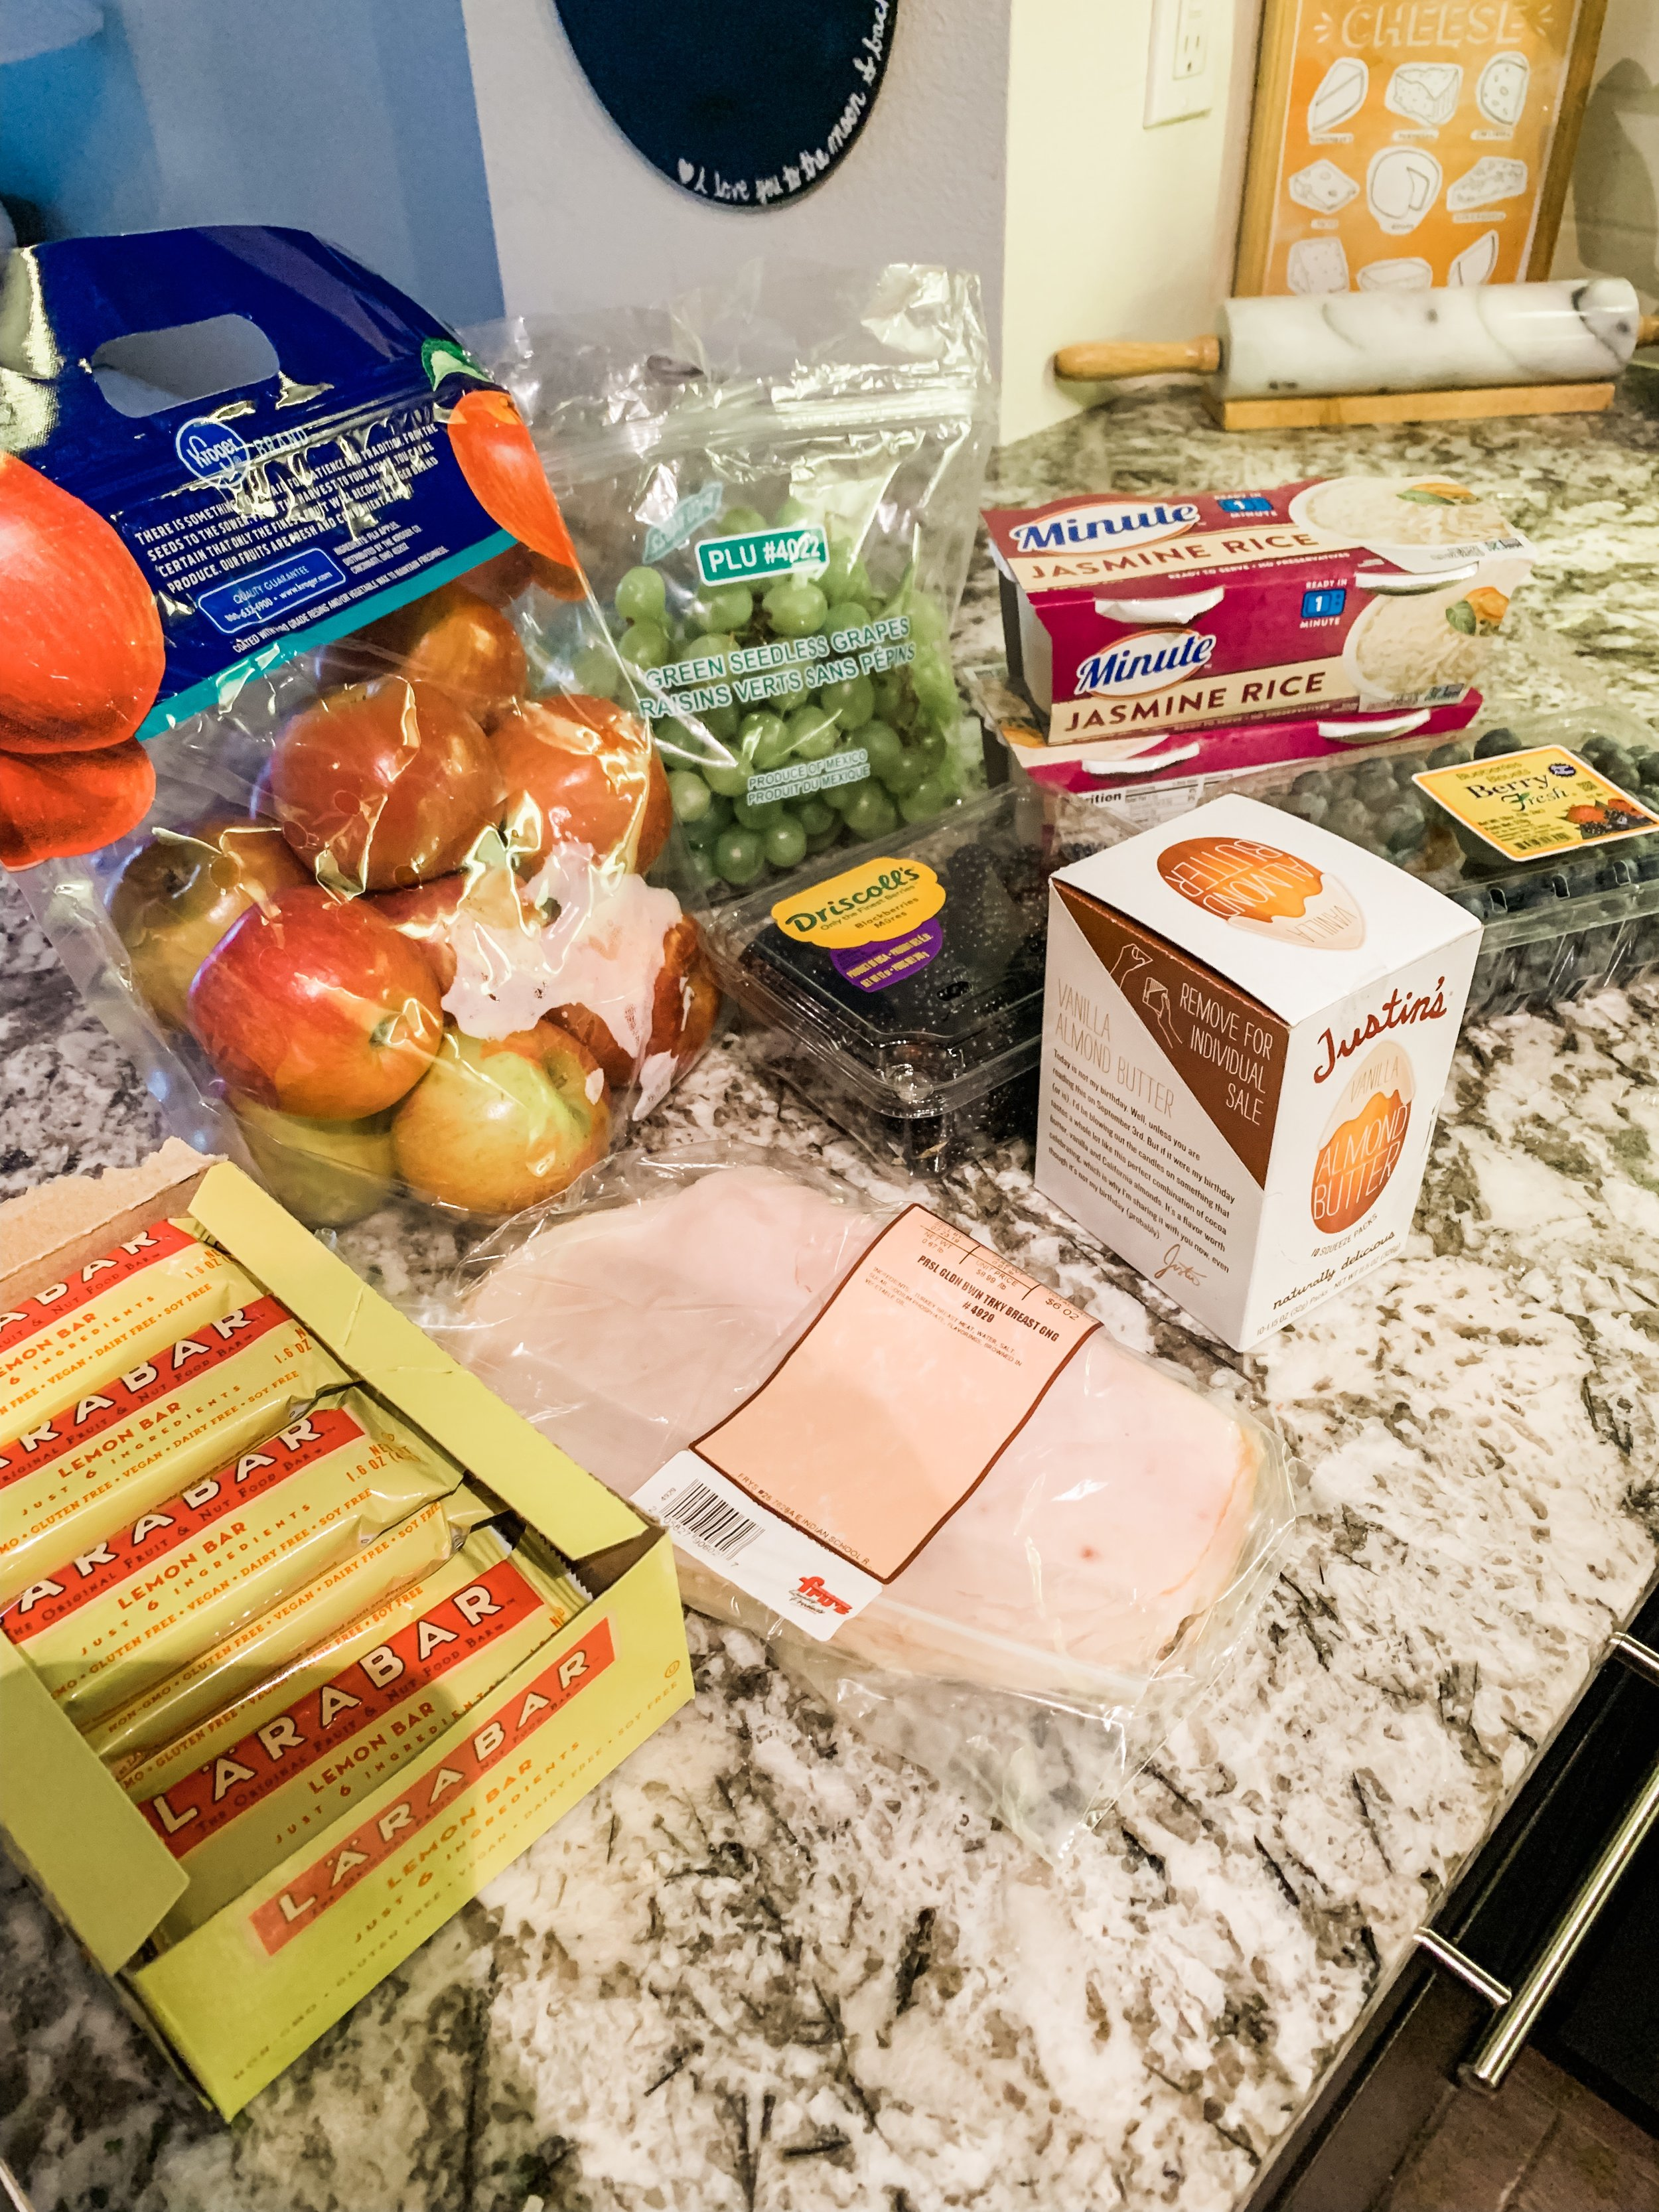 All the Snacks I packed for Disneyland - Almond ButterFruitsRiceProtein BarsTurkeyLots of Zip Fizz